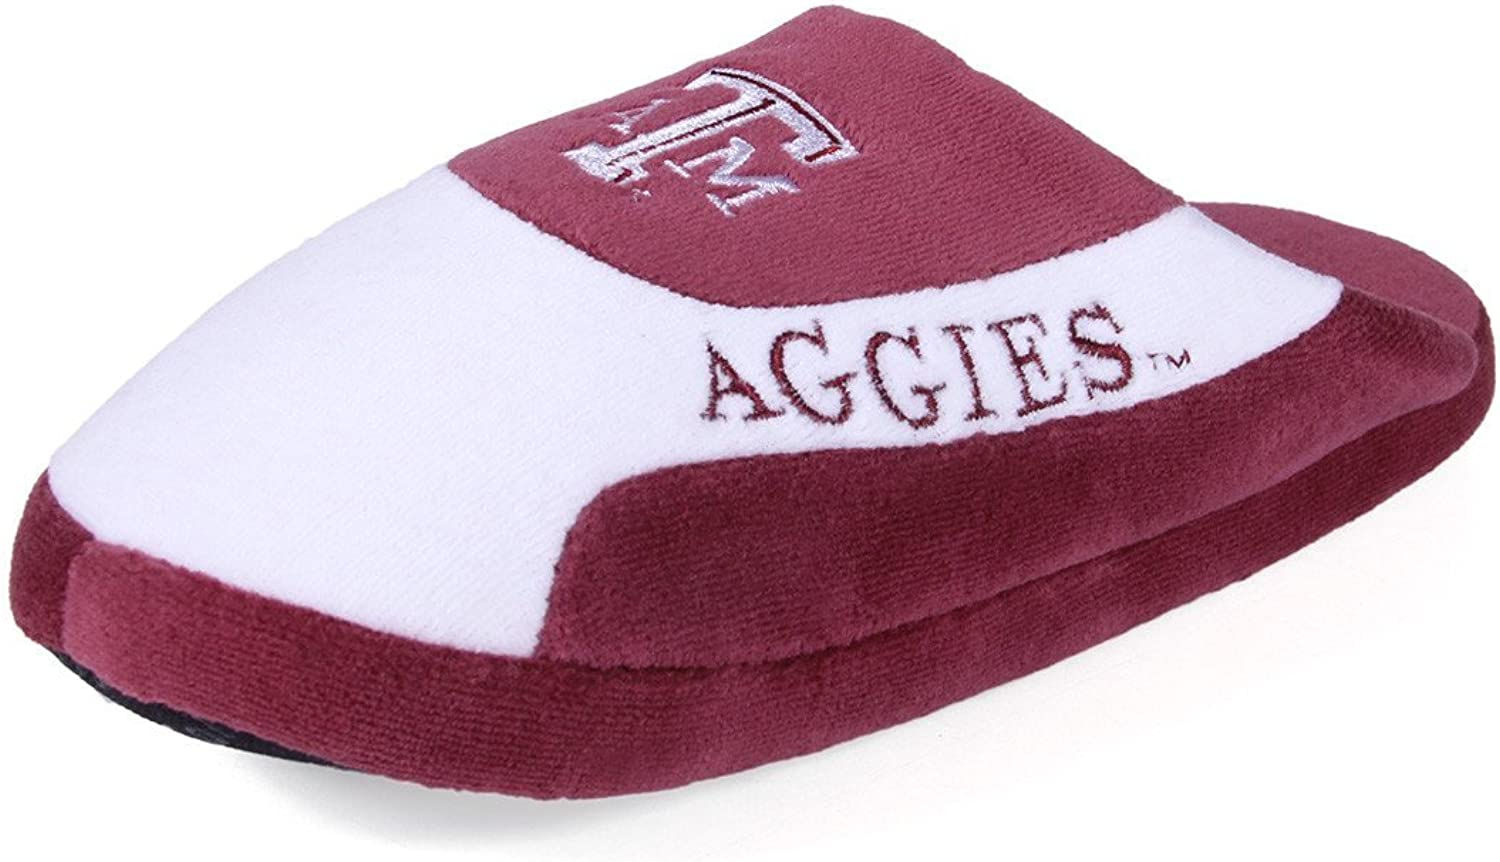 TAM07-4 - Texas A & M Aggies - X Large - Happy Feet Mens and Womens - NCAA Low Pro Slippers